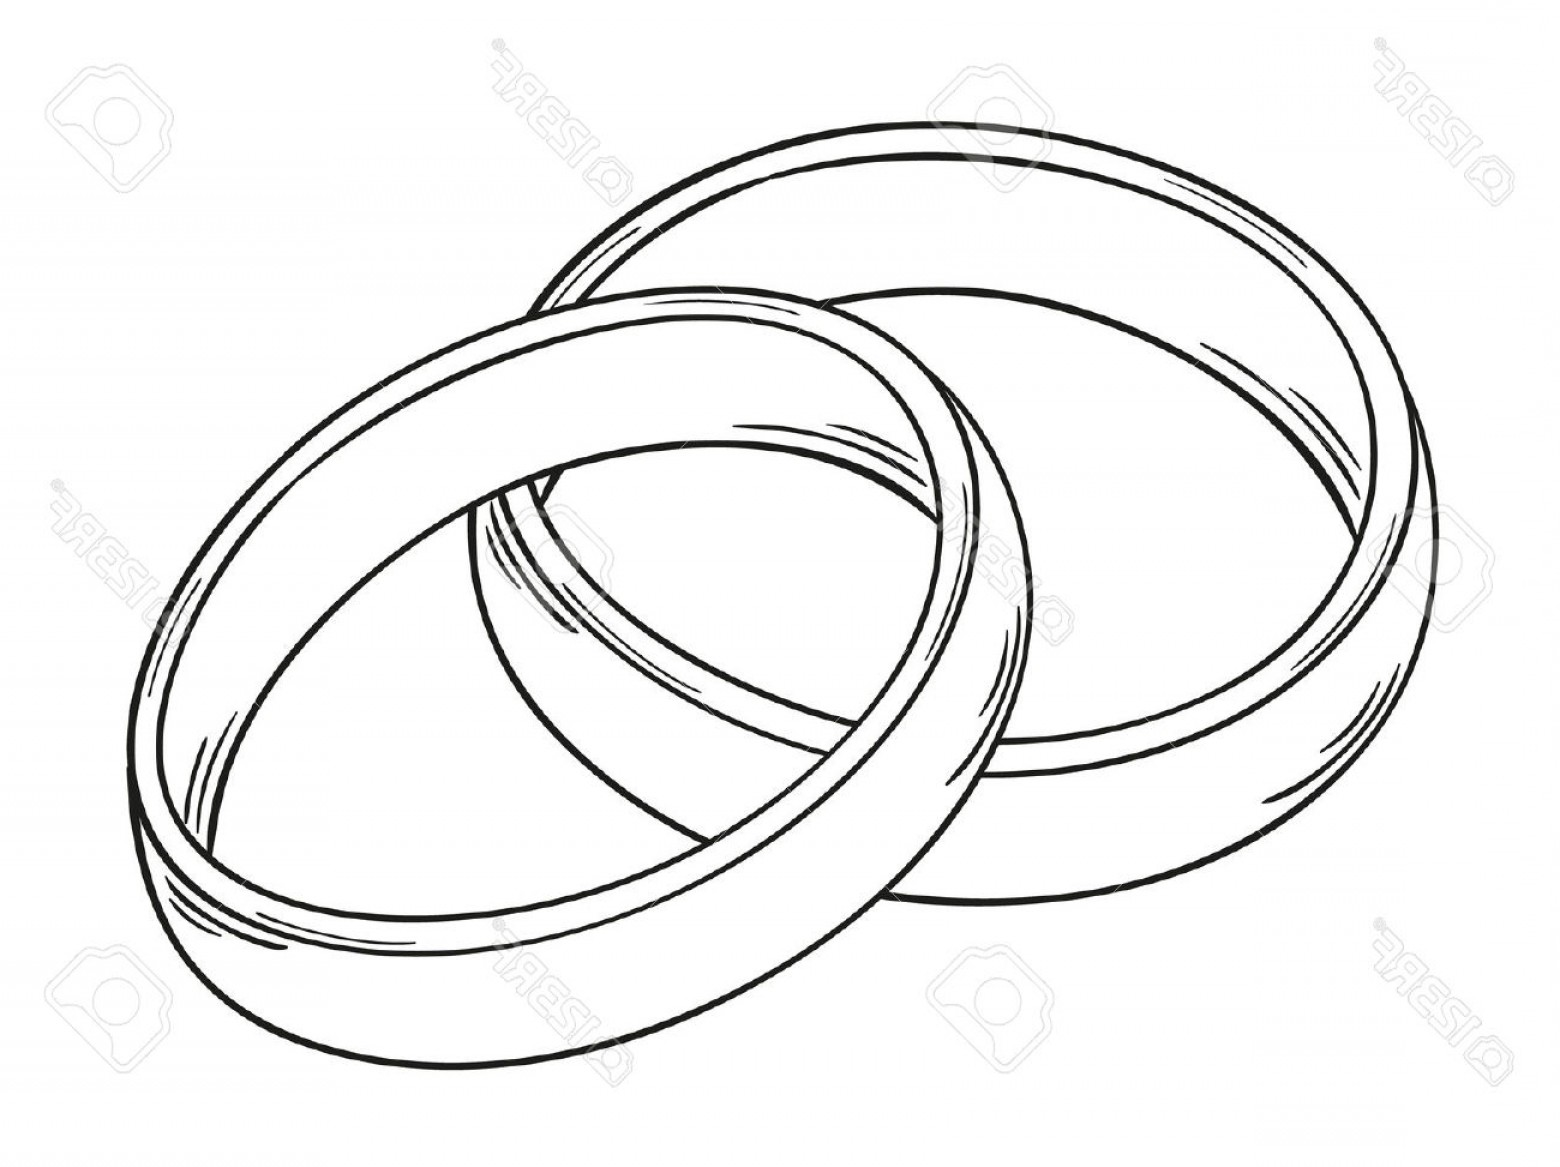 1560x1167 Wedding Ring Drawing Wedding Rings How To Draw A Cartoon Diamond